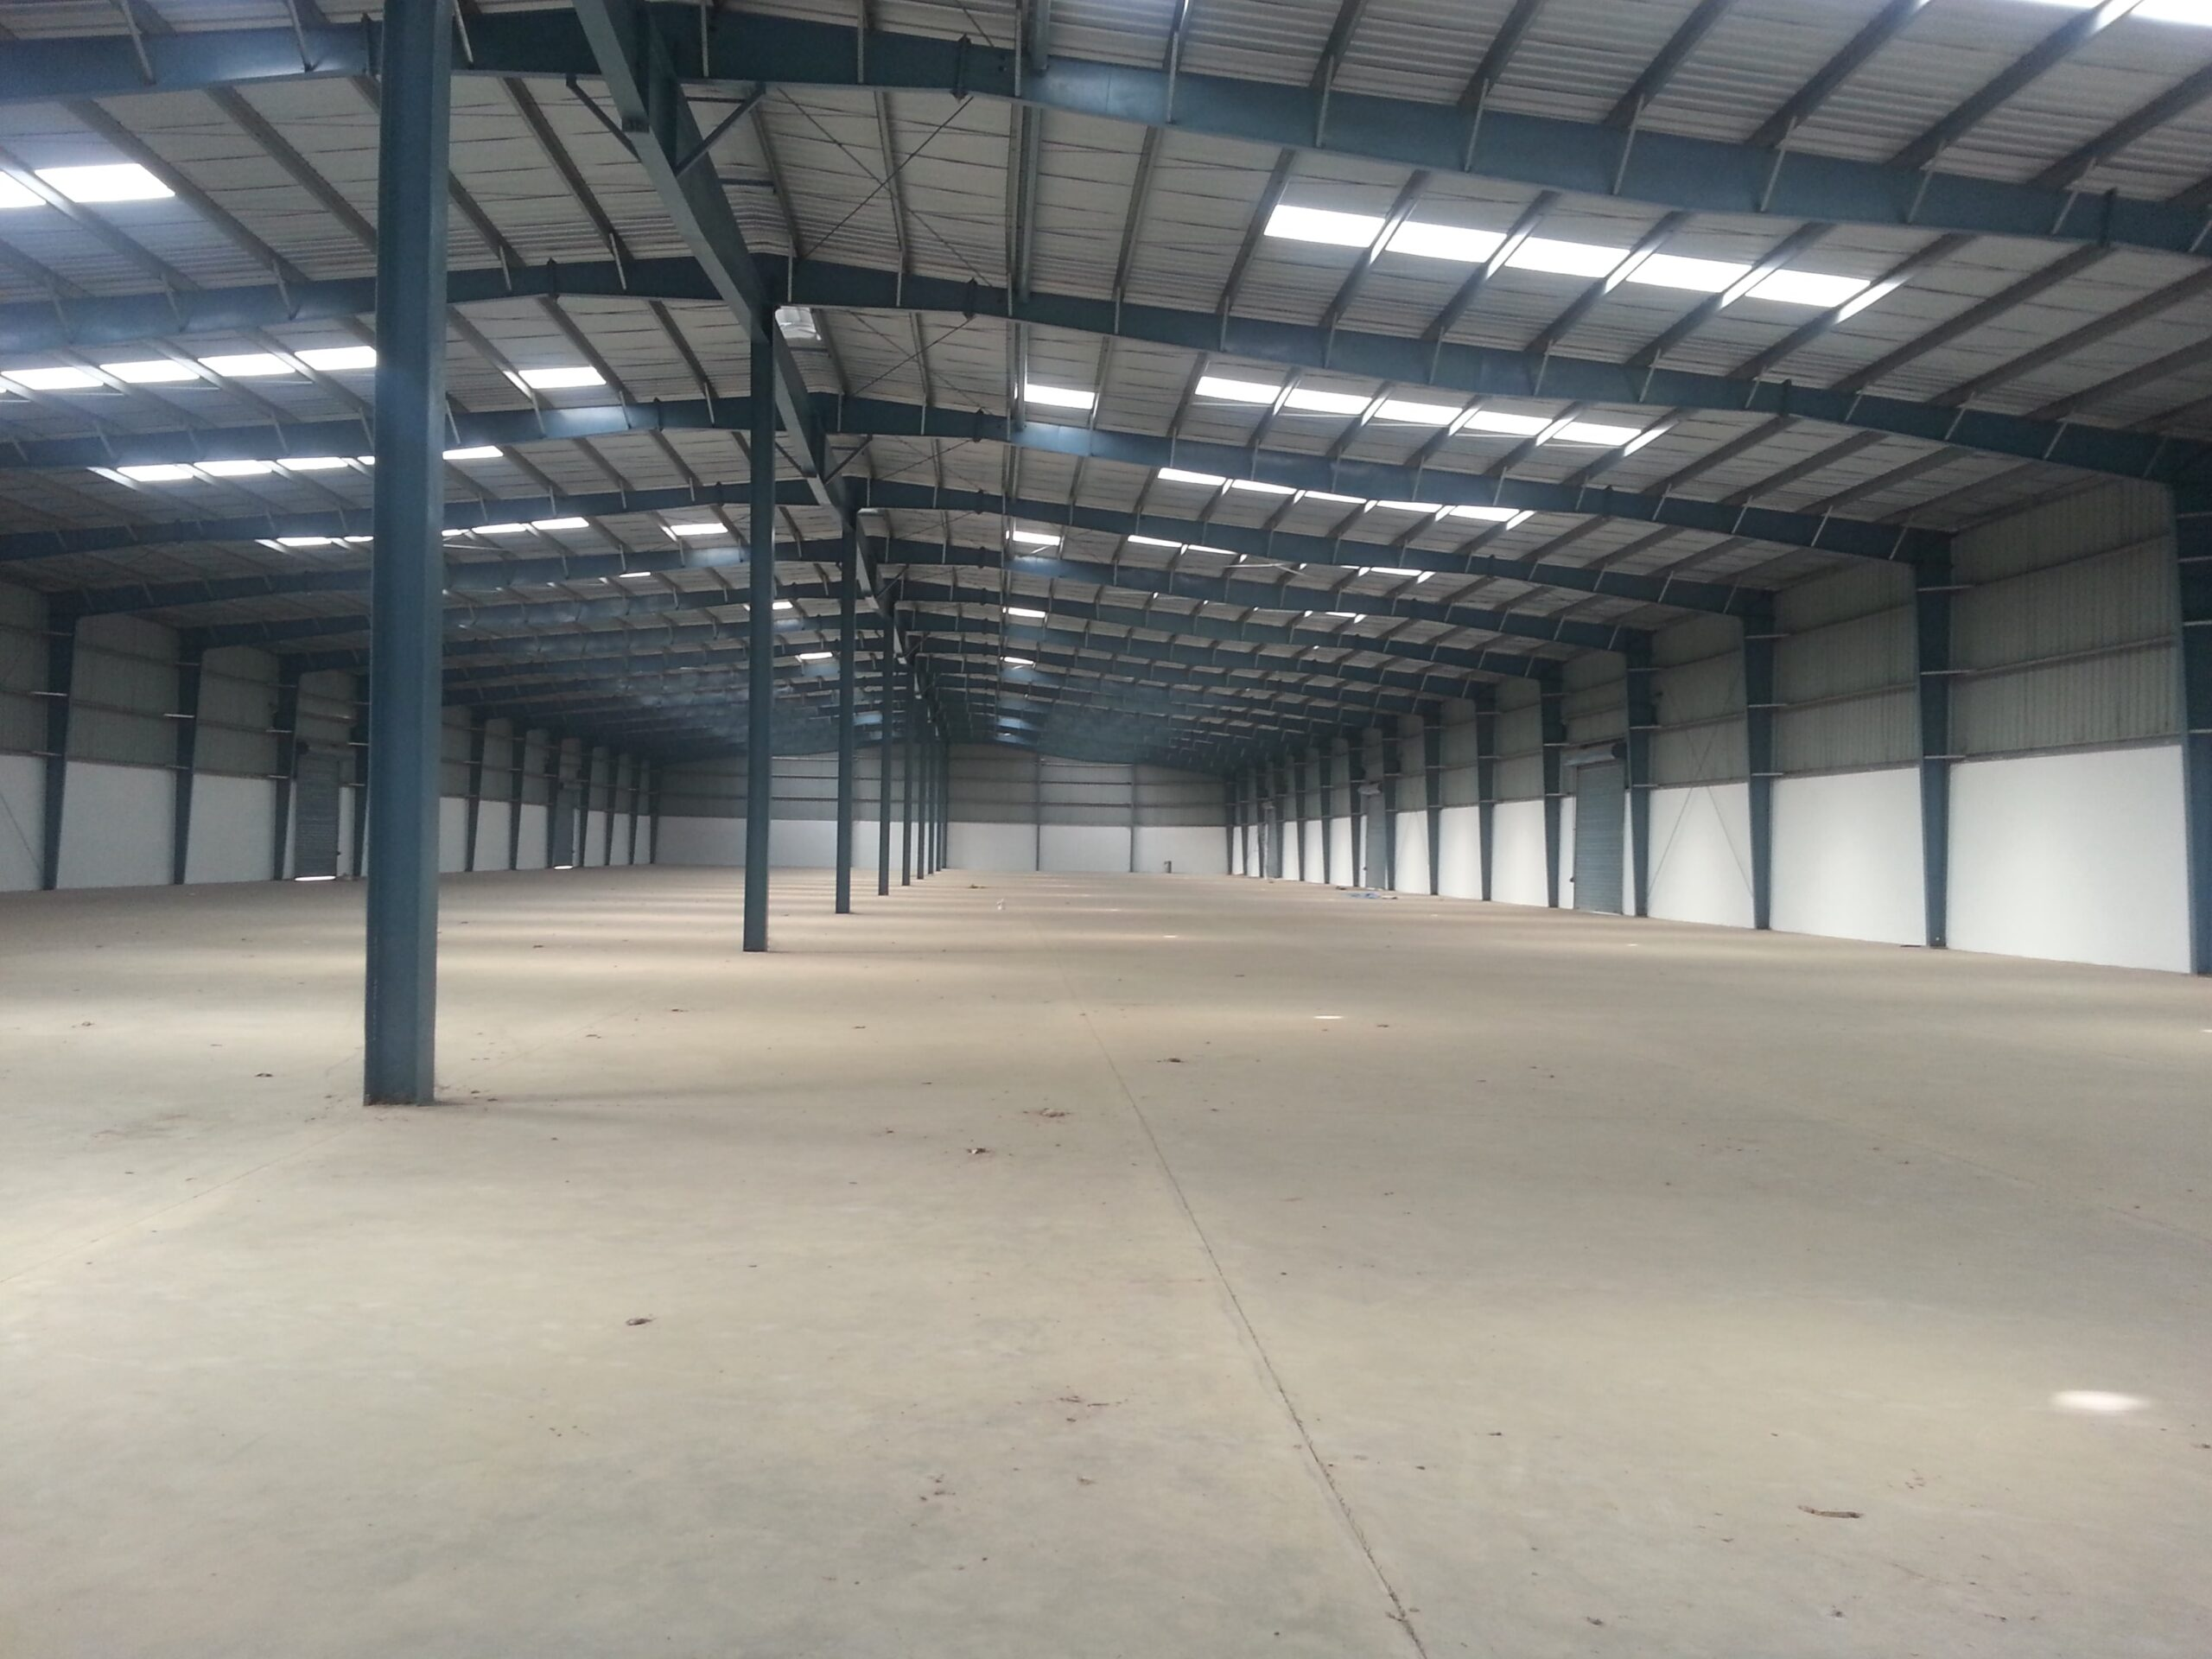 66000-Sq.-Ft.-Warehouse-at-Kheda-Highway-8-min